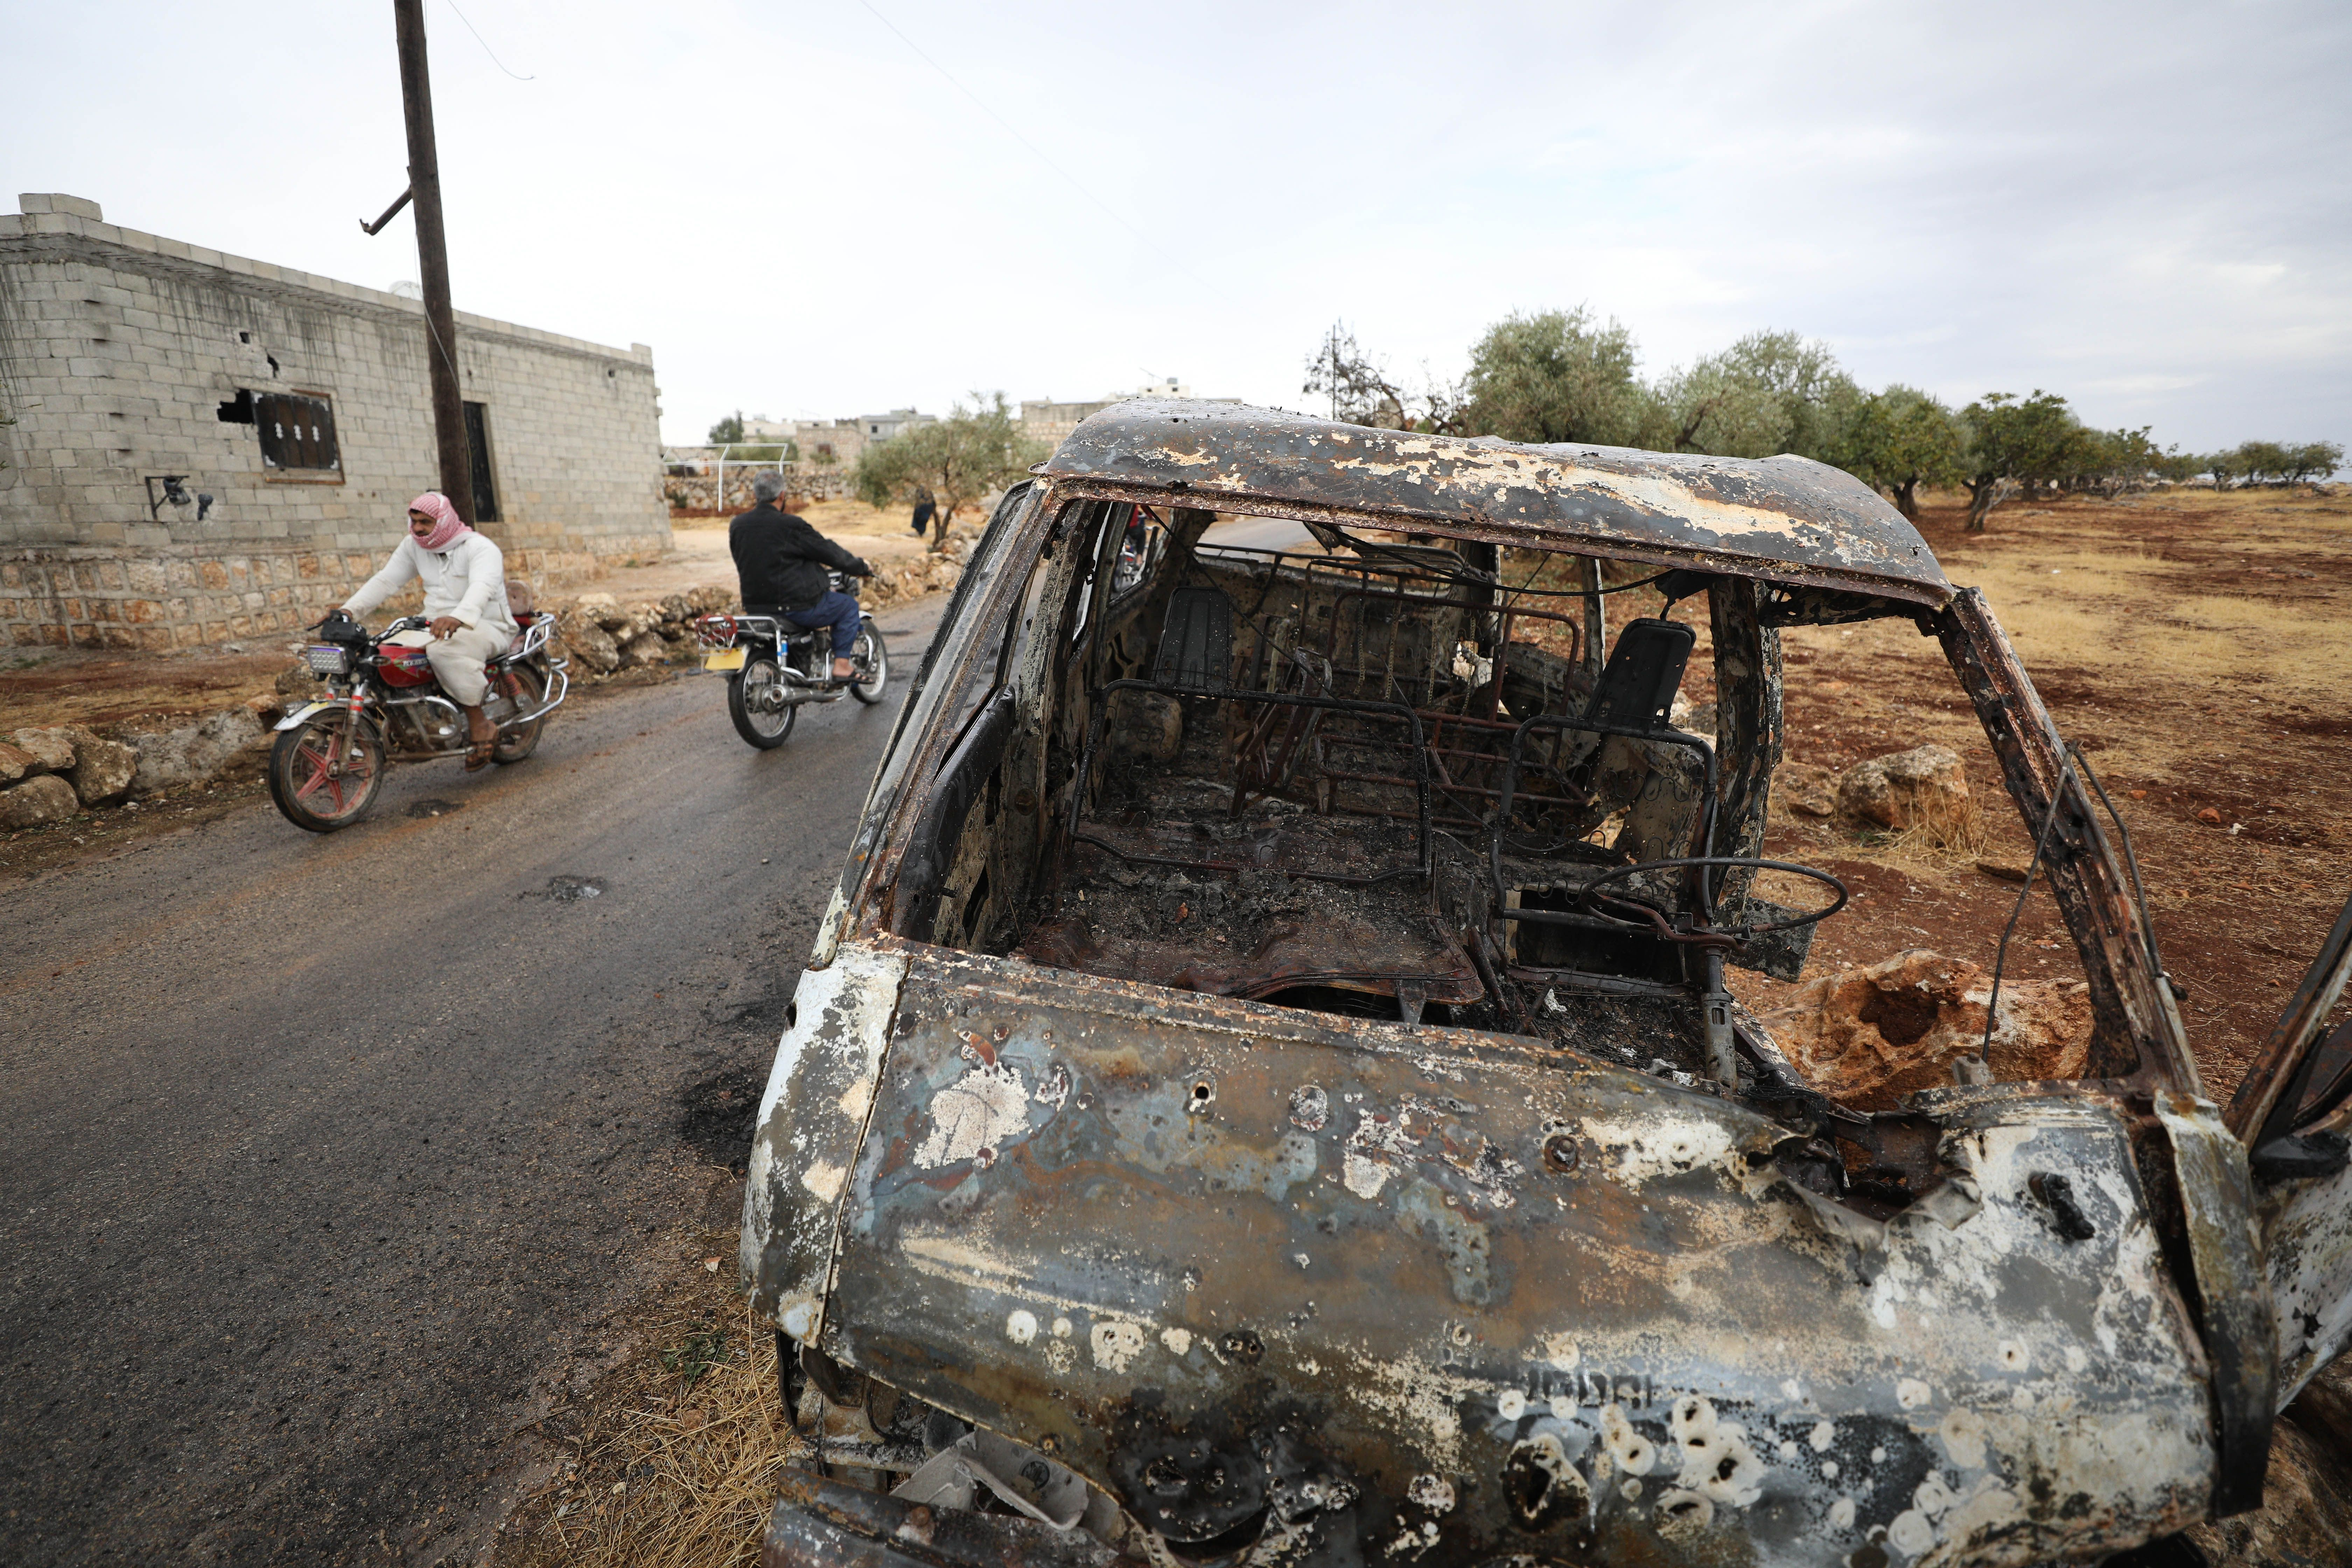 A picture taken on October 28, 2019 shows Syrian bikers riding past a damaged car at the site of a suspected US-led operation against Islamic State (IS) chief Abu Bakr al-Baghdadi the previous day, on the edge of the small Syrian village of Barisha in the country's opposition-held northwestern Idlib province. - US President Donald Trump announced that Baghdadi, the elusive leader of the jihadist group and the world's most wanted man, was killed in the early hours of Octobe 27 in an overnight US raid near the village, located less than five kilometres from Turkey and controlled by the dominant jihadist group Hayat Tahrir al-Sham, an organisation that includes former operatives from Al-Qaeda's Syria affiliate. (Photo by Omar HAJ KADOUR / AFP) (Photo by OMAR HAJ KADOUR/AFP via Getty Images)